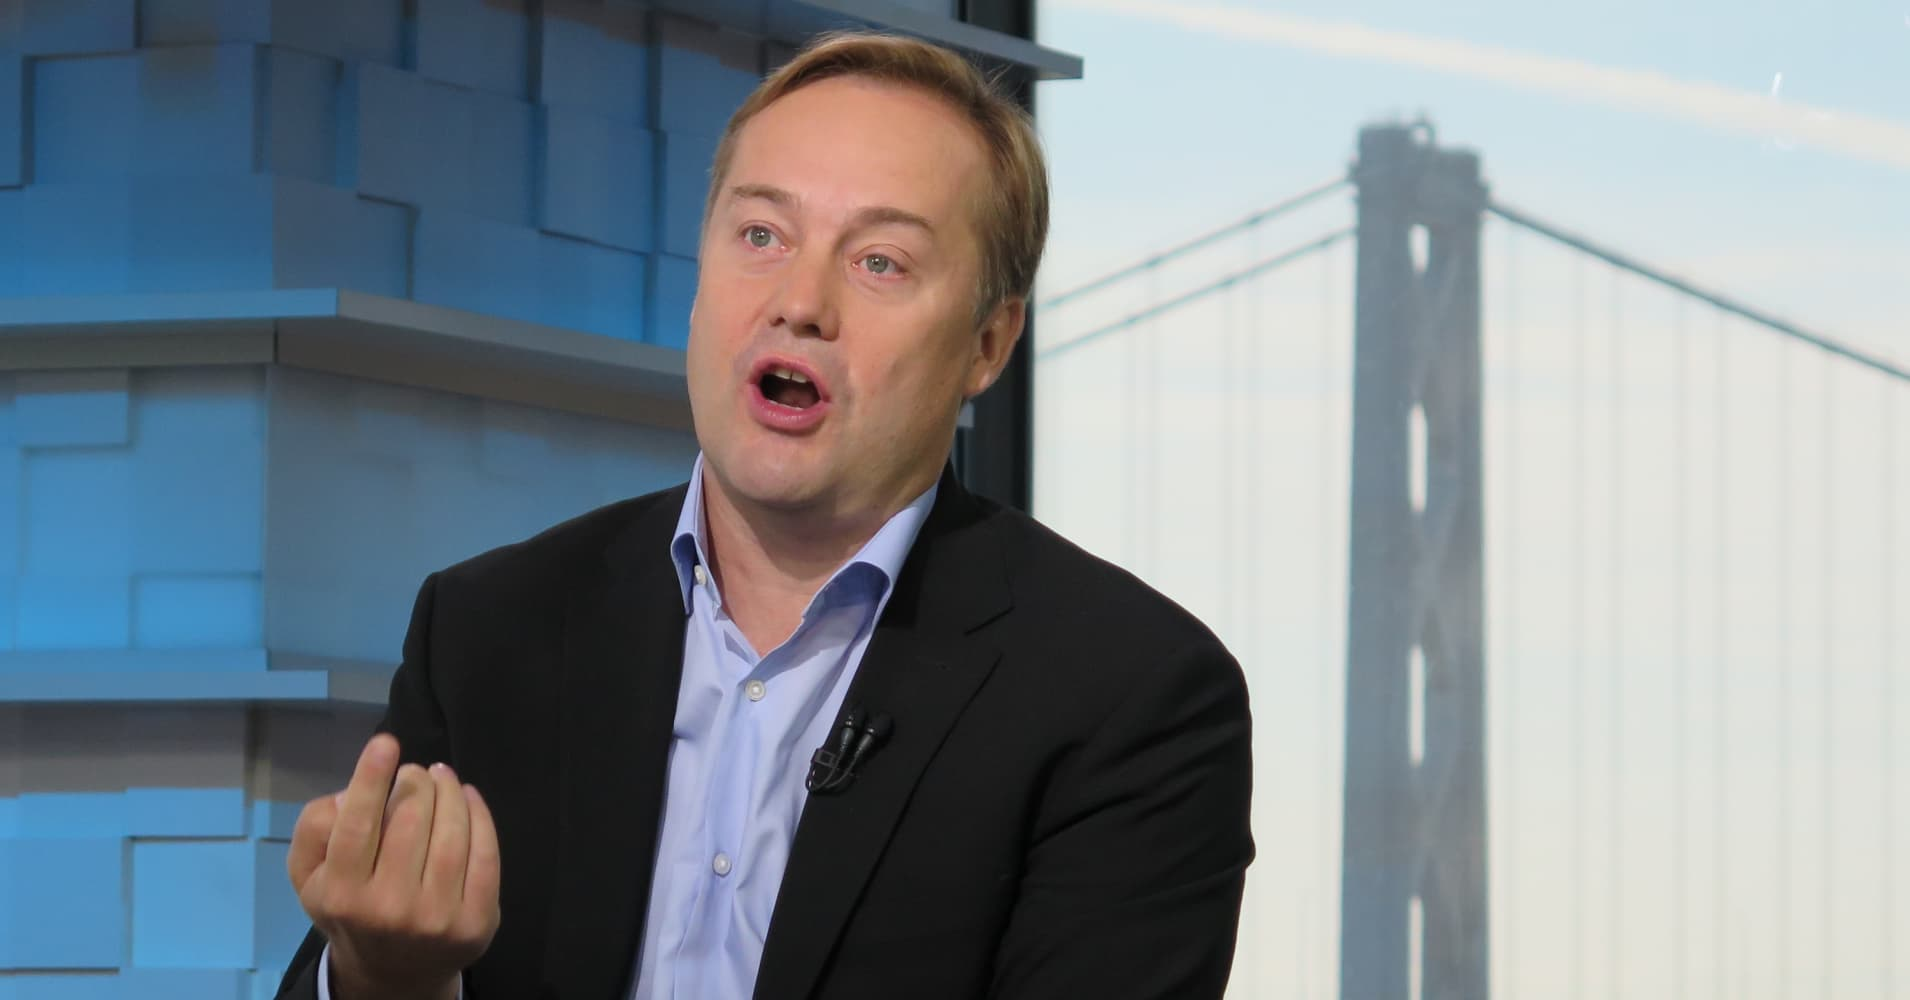 Big tech is now a monopoly 'that doesn't look like a monopoly,' investor Calacanis said